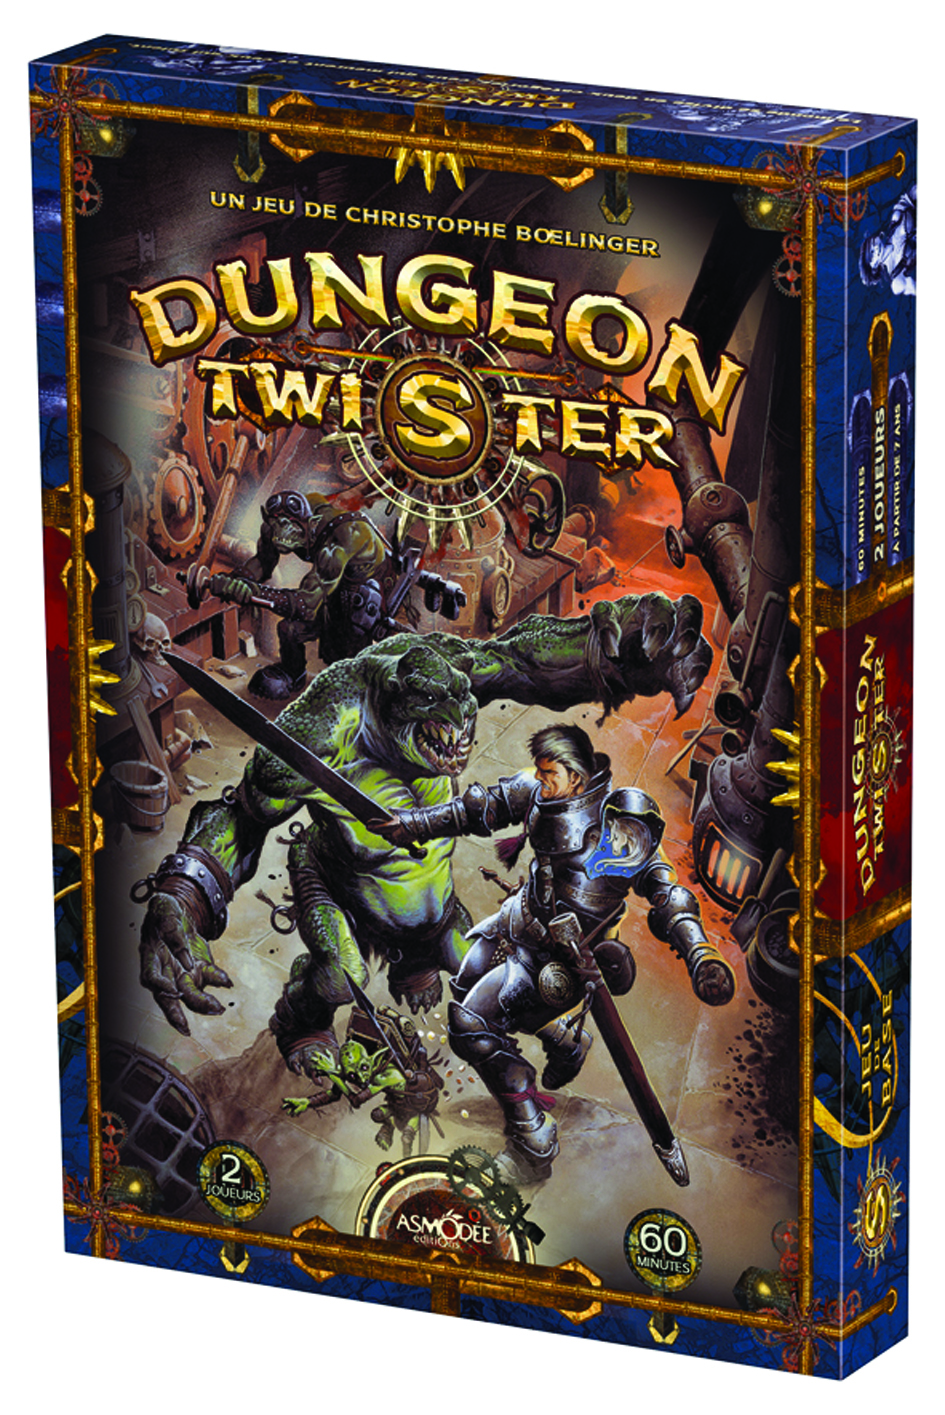 Dungeon twistter 